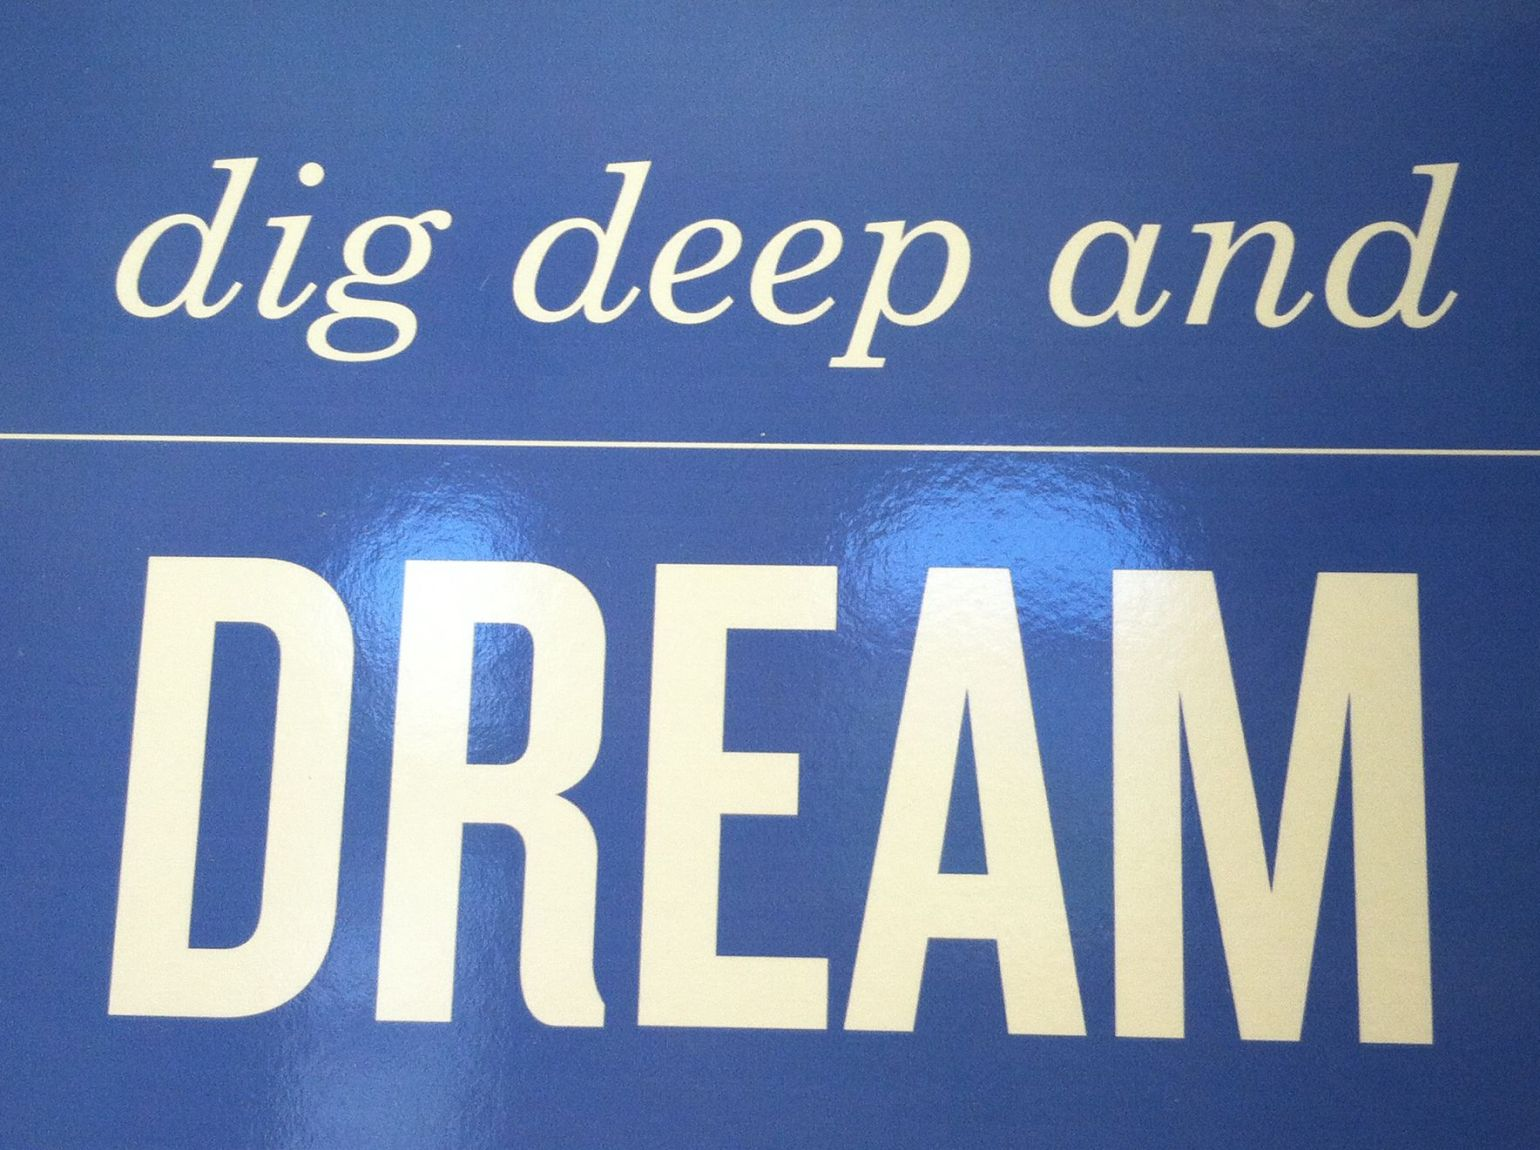 dig deep and dream